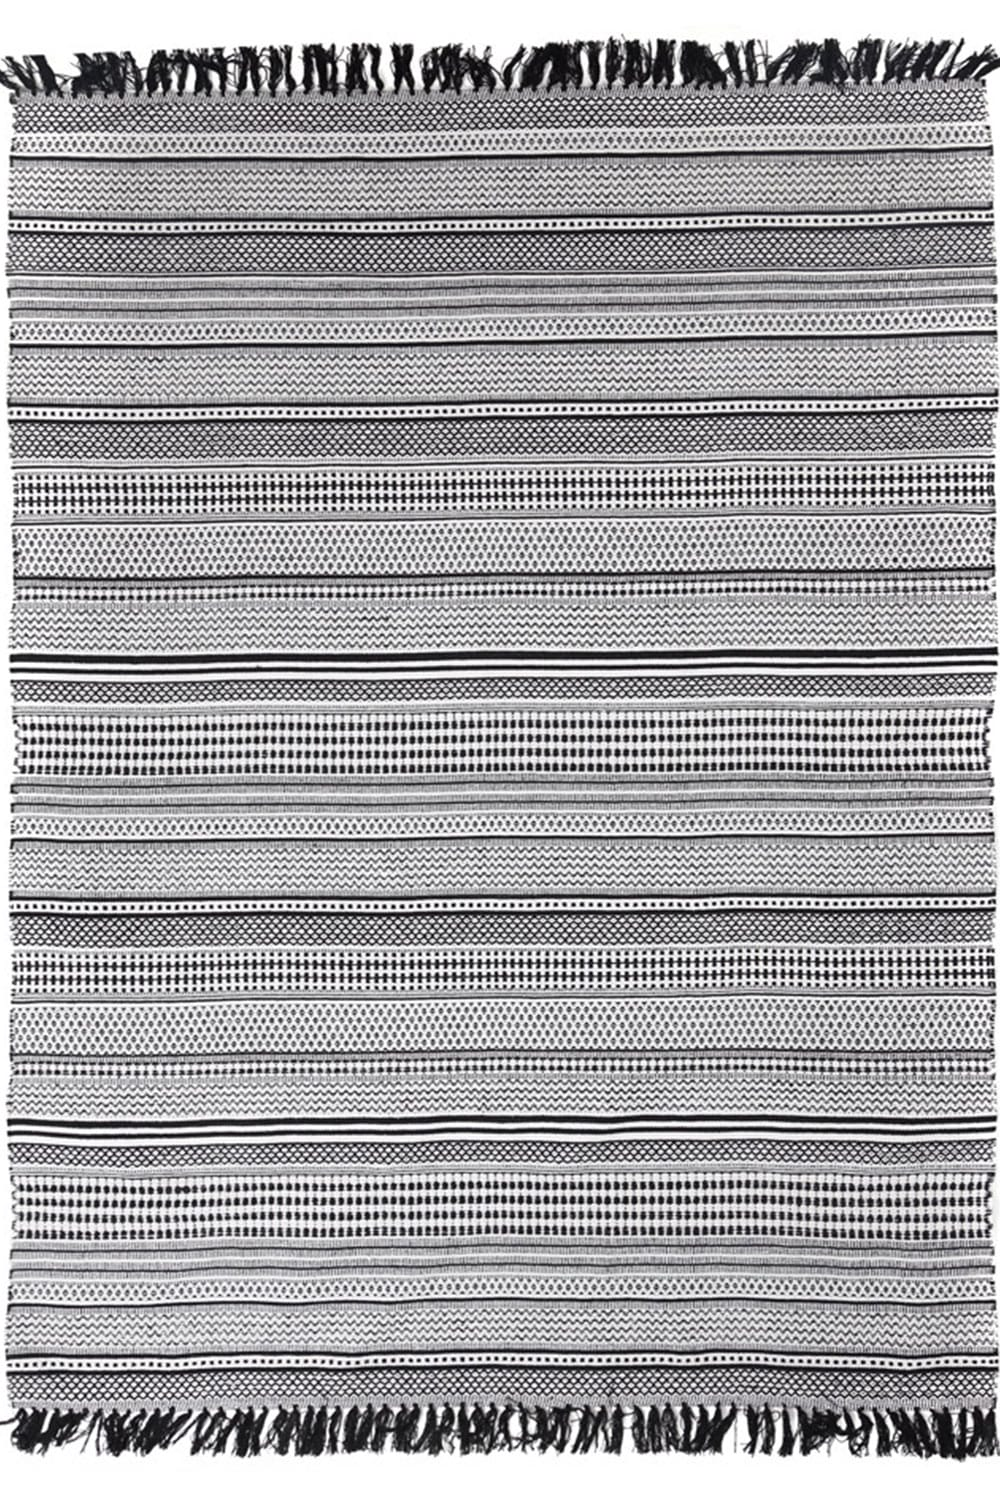 Χαλί Urban Cotton Kilim Samaira Black-White Royal carpet 160X230